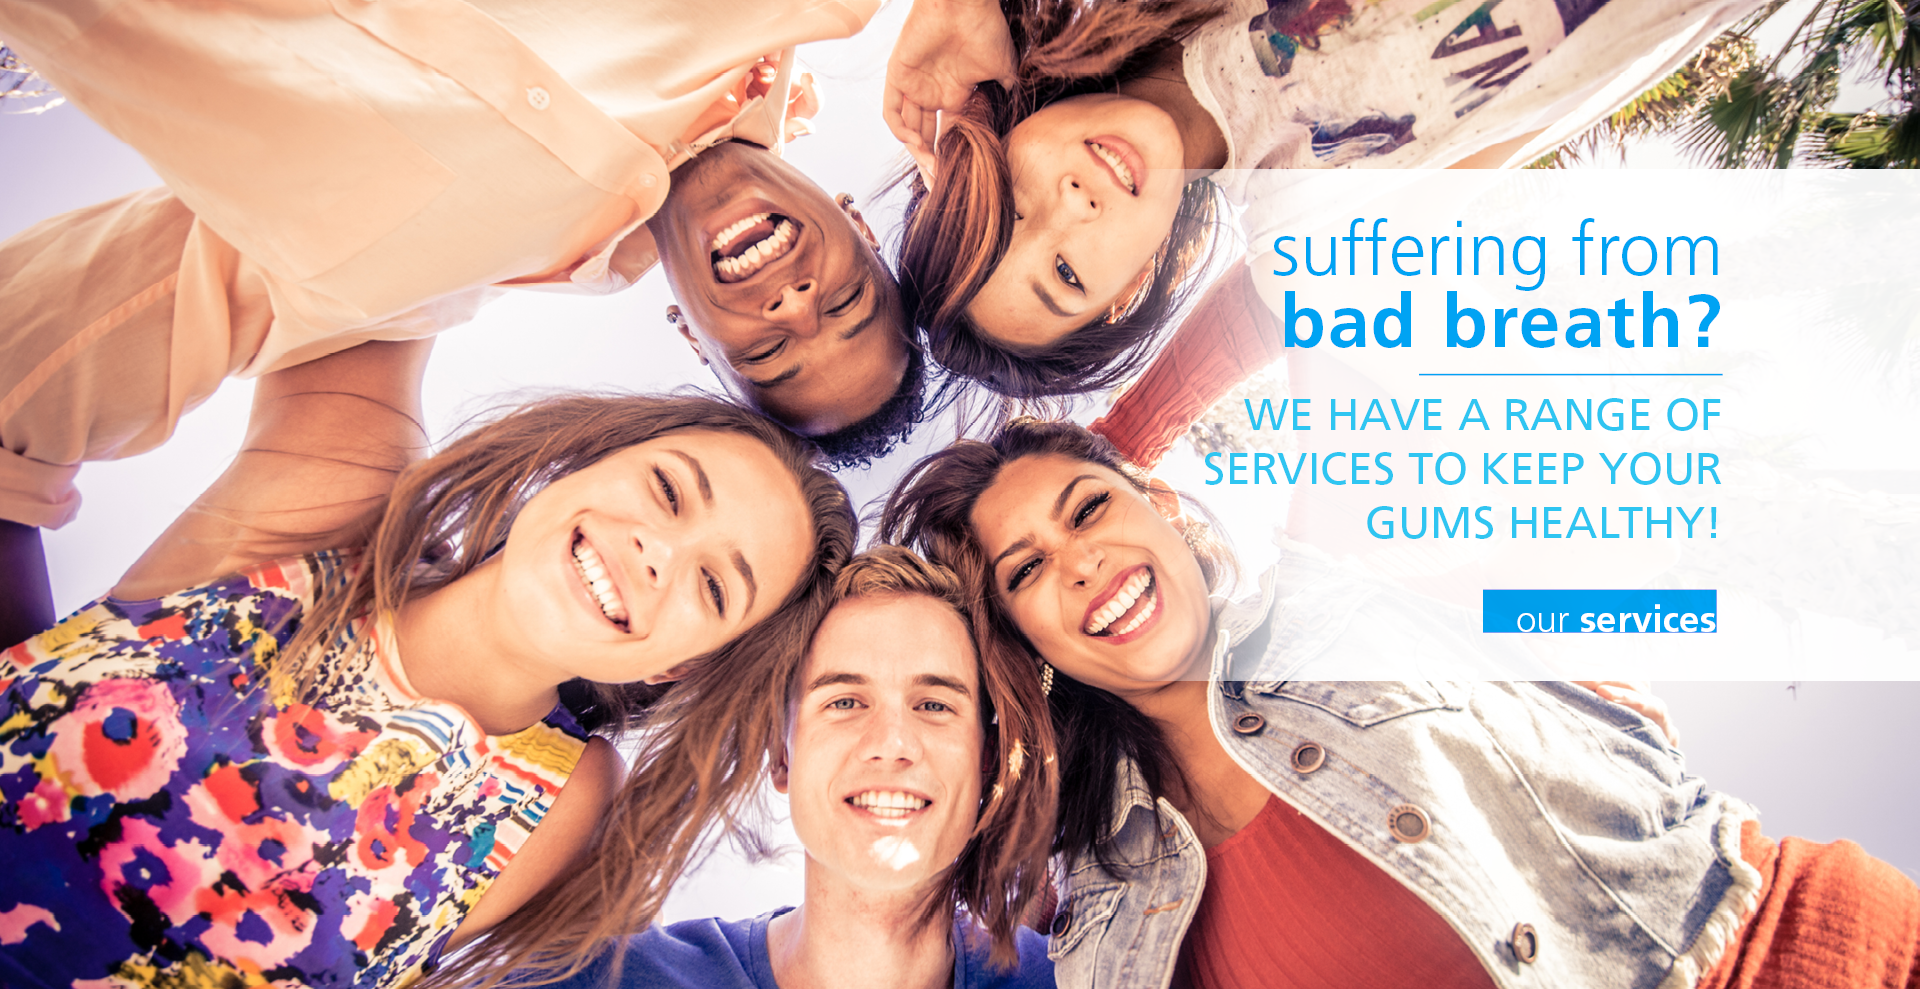 Suffering from bad breath? We have a range of services to keep your gums healthy!